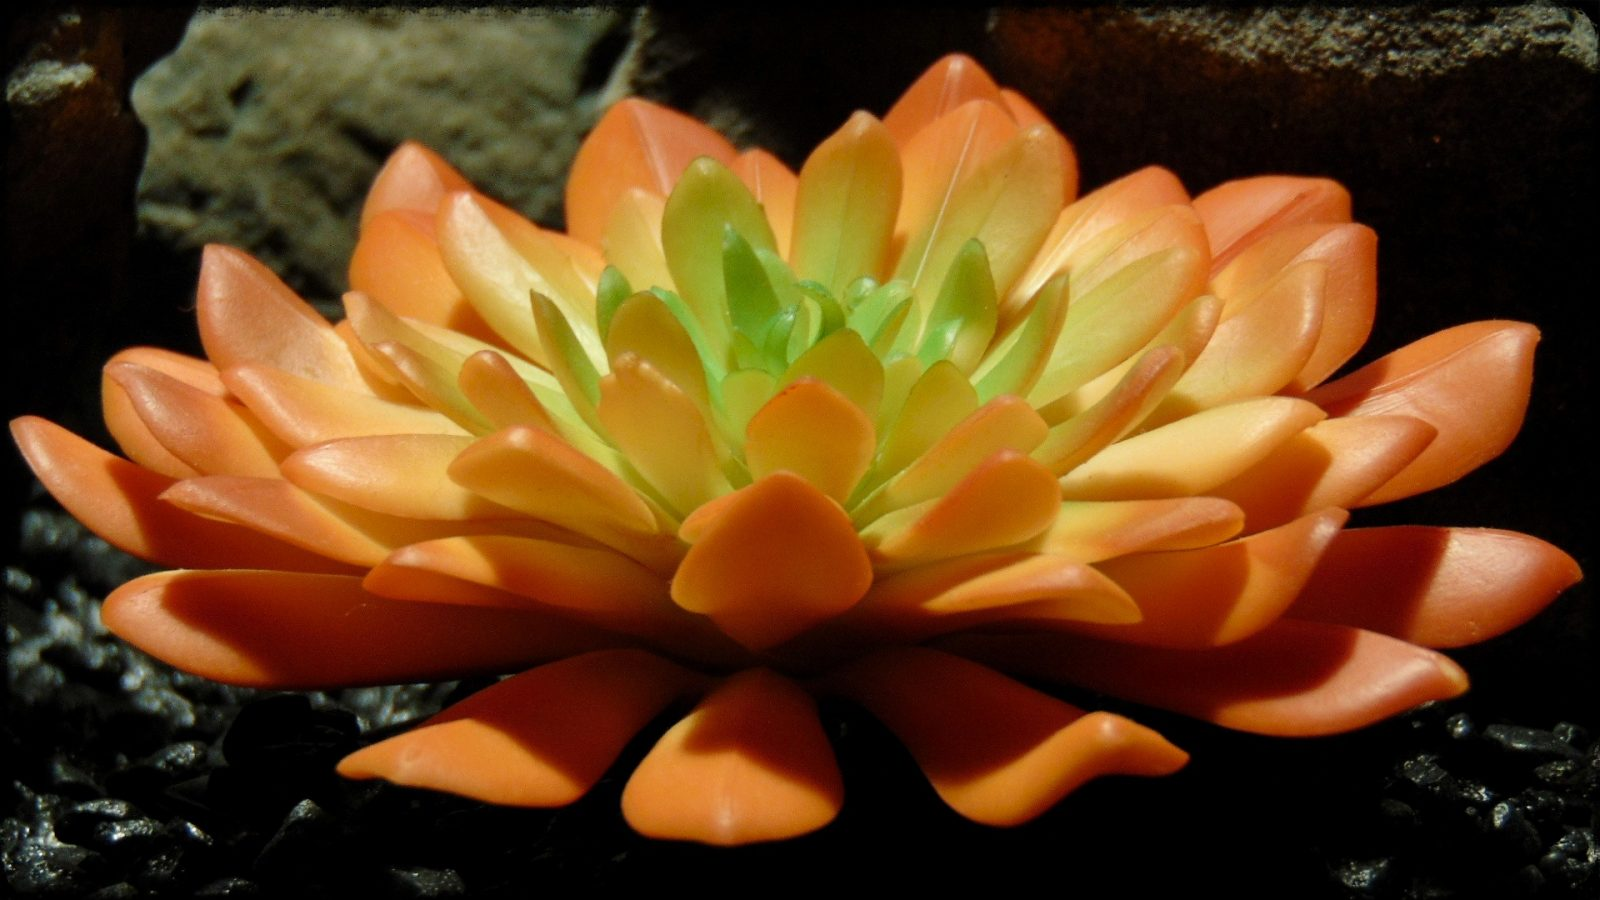 free Desktop Wallpaper - Artificial Ornage Succulent - Ron Beck Designs - 1920 x 1080